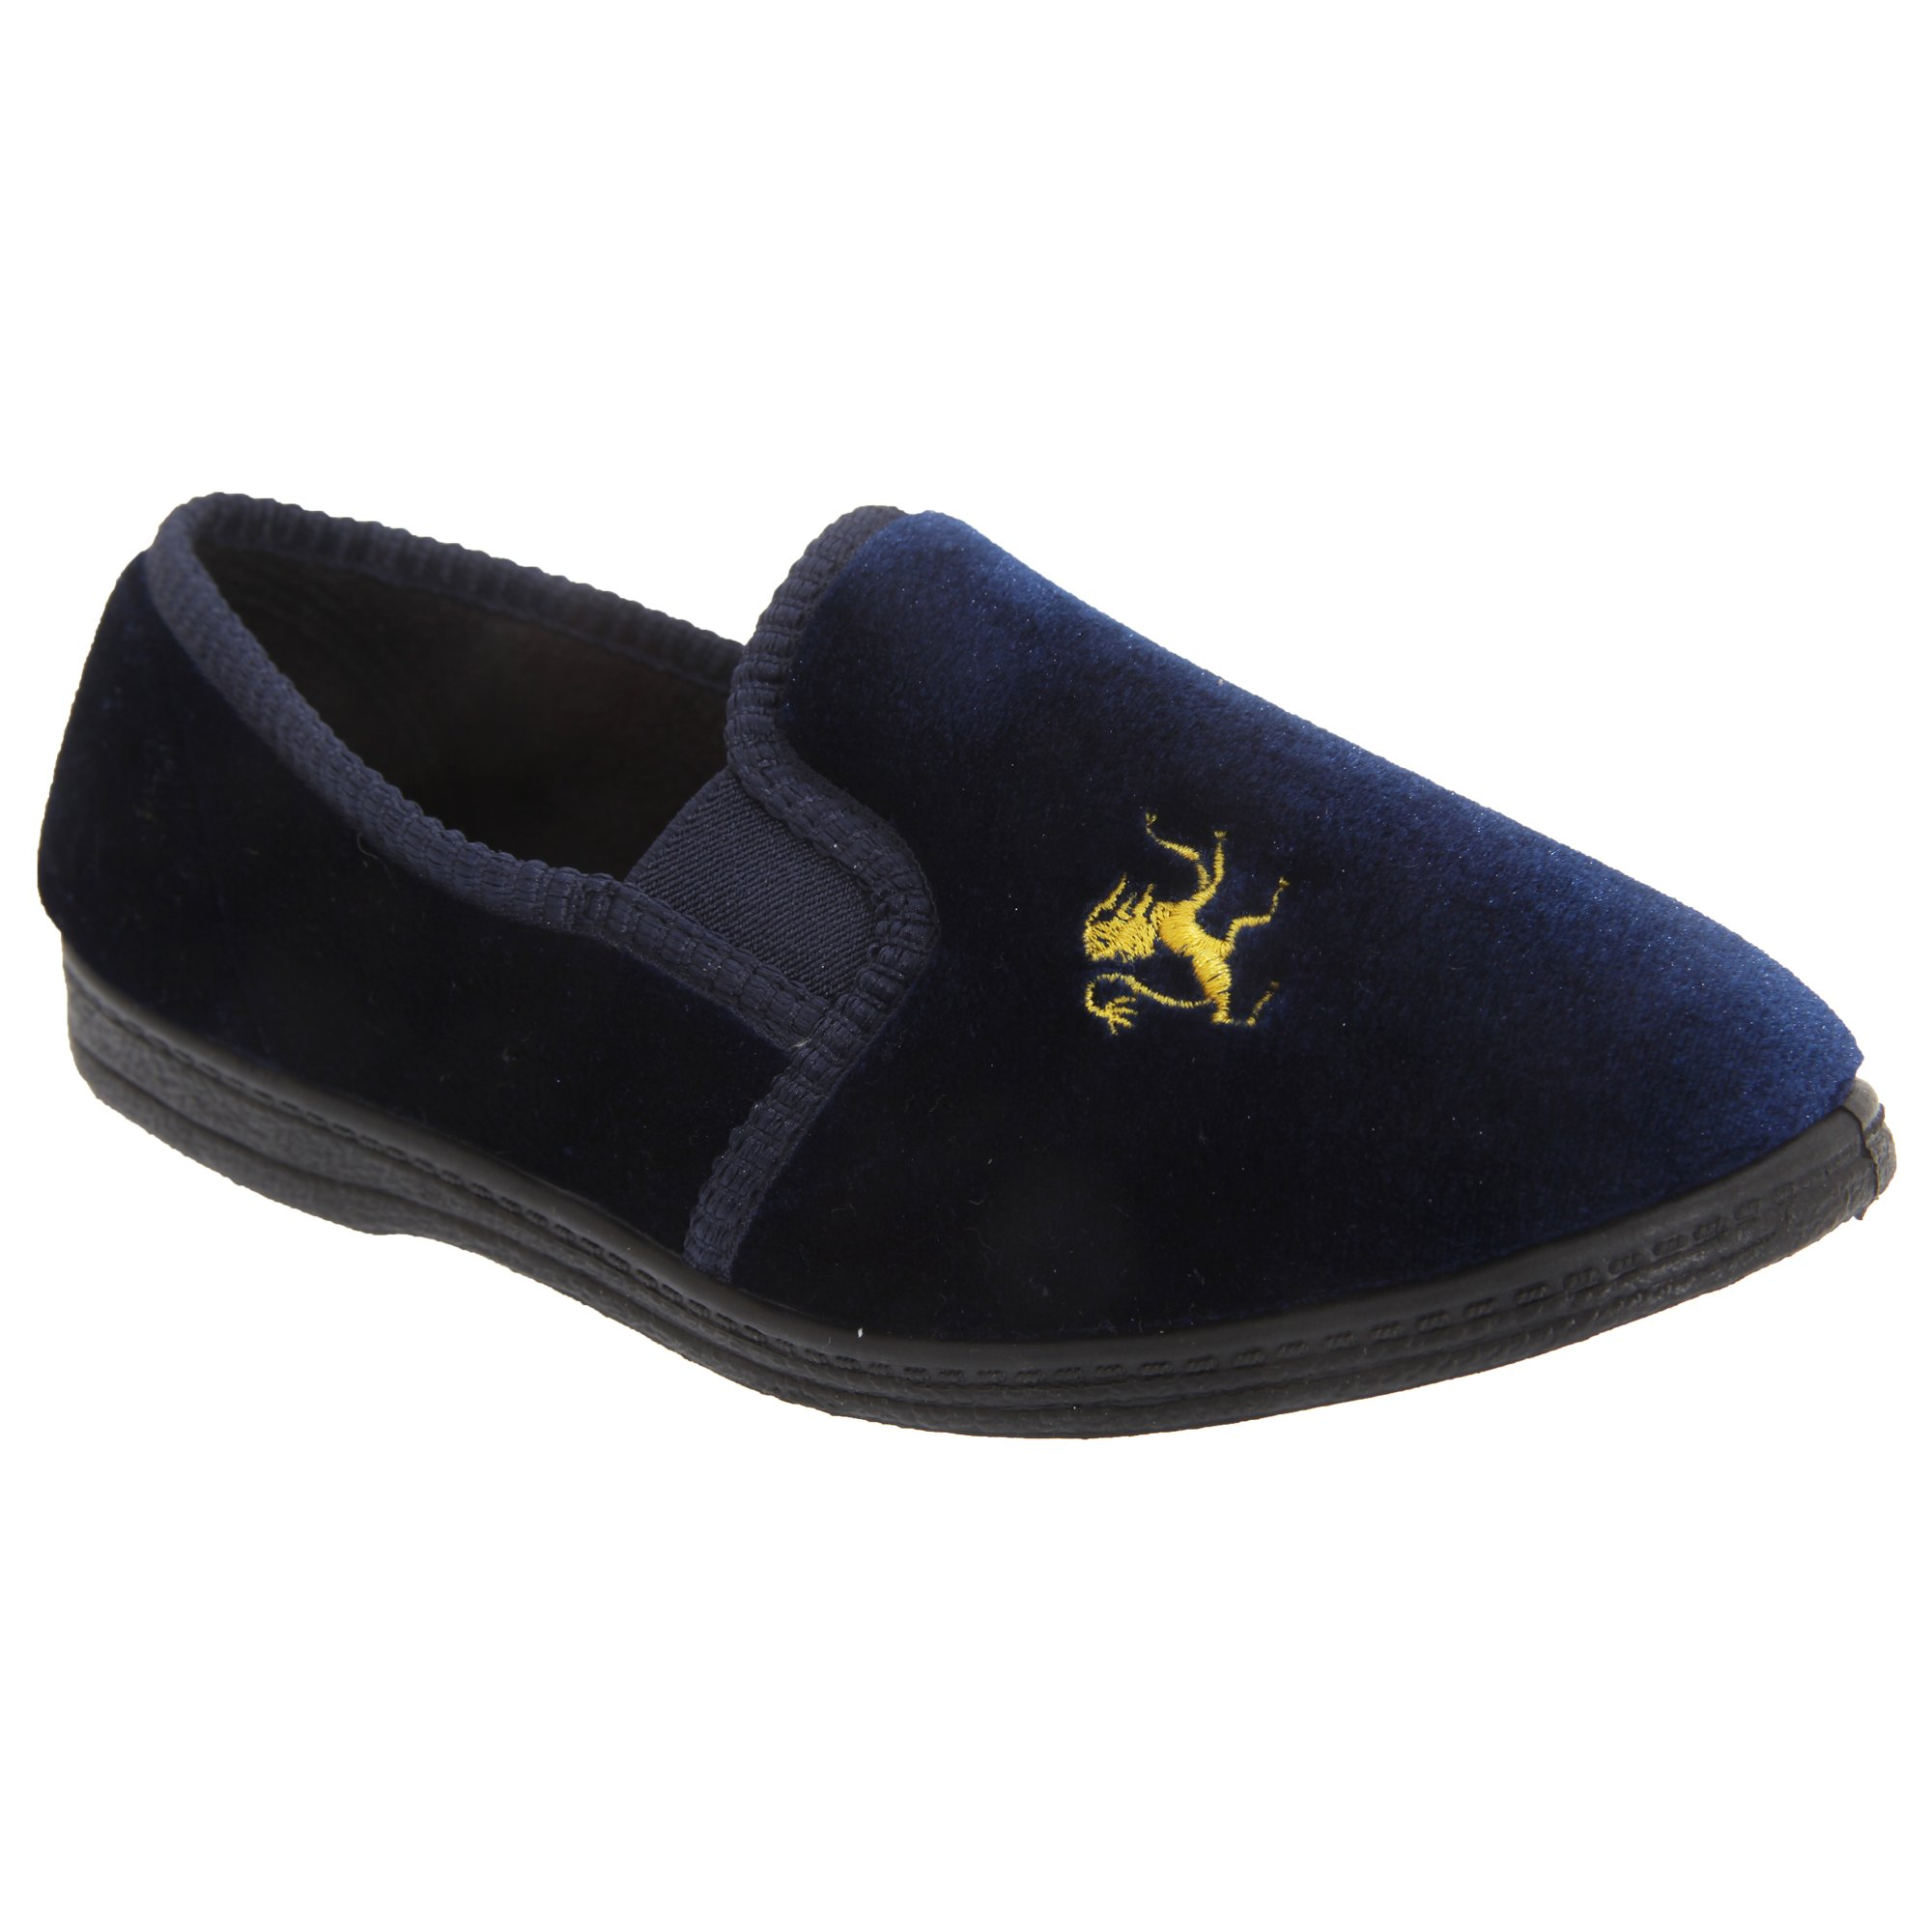 Sleepers Kids Big Boys Kyle Lion Motif Twin Gusset Slippers (1 US) (Navy Blue) by Sleepers (Image #1)